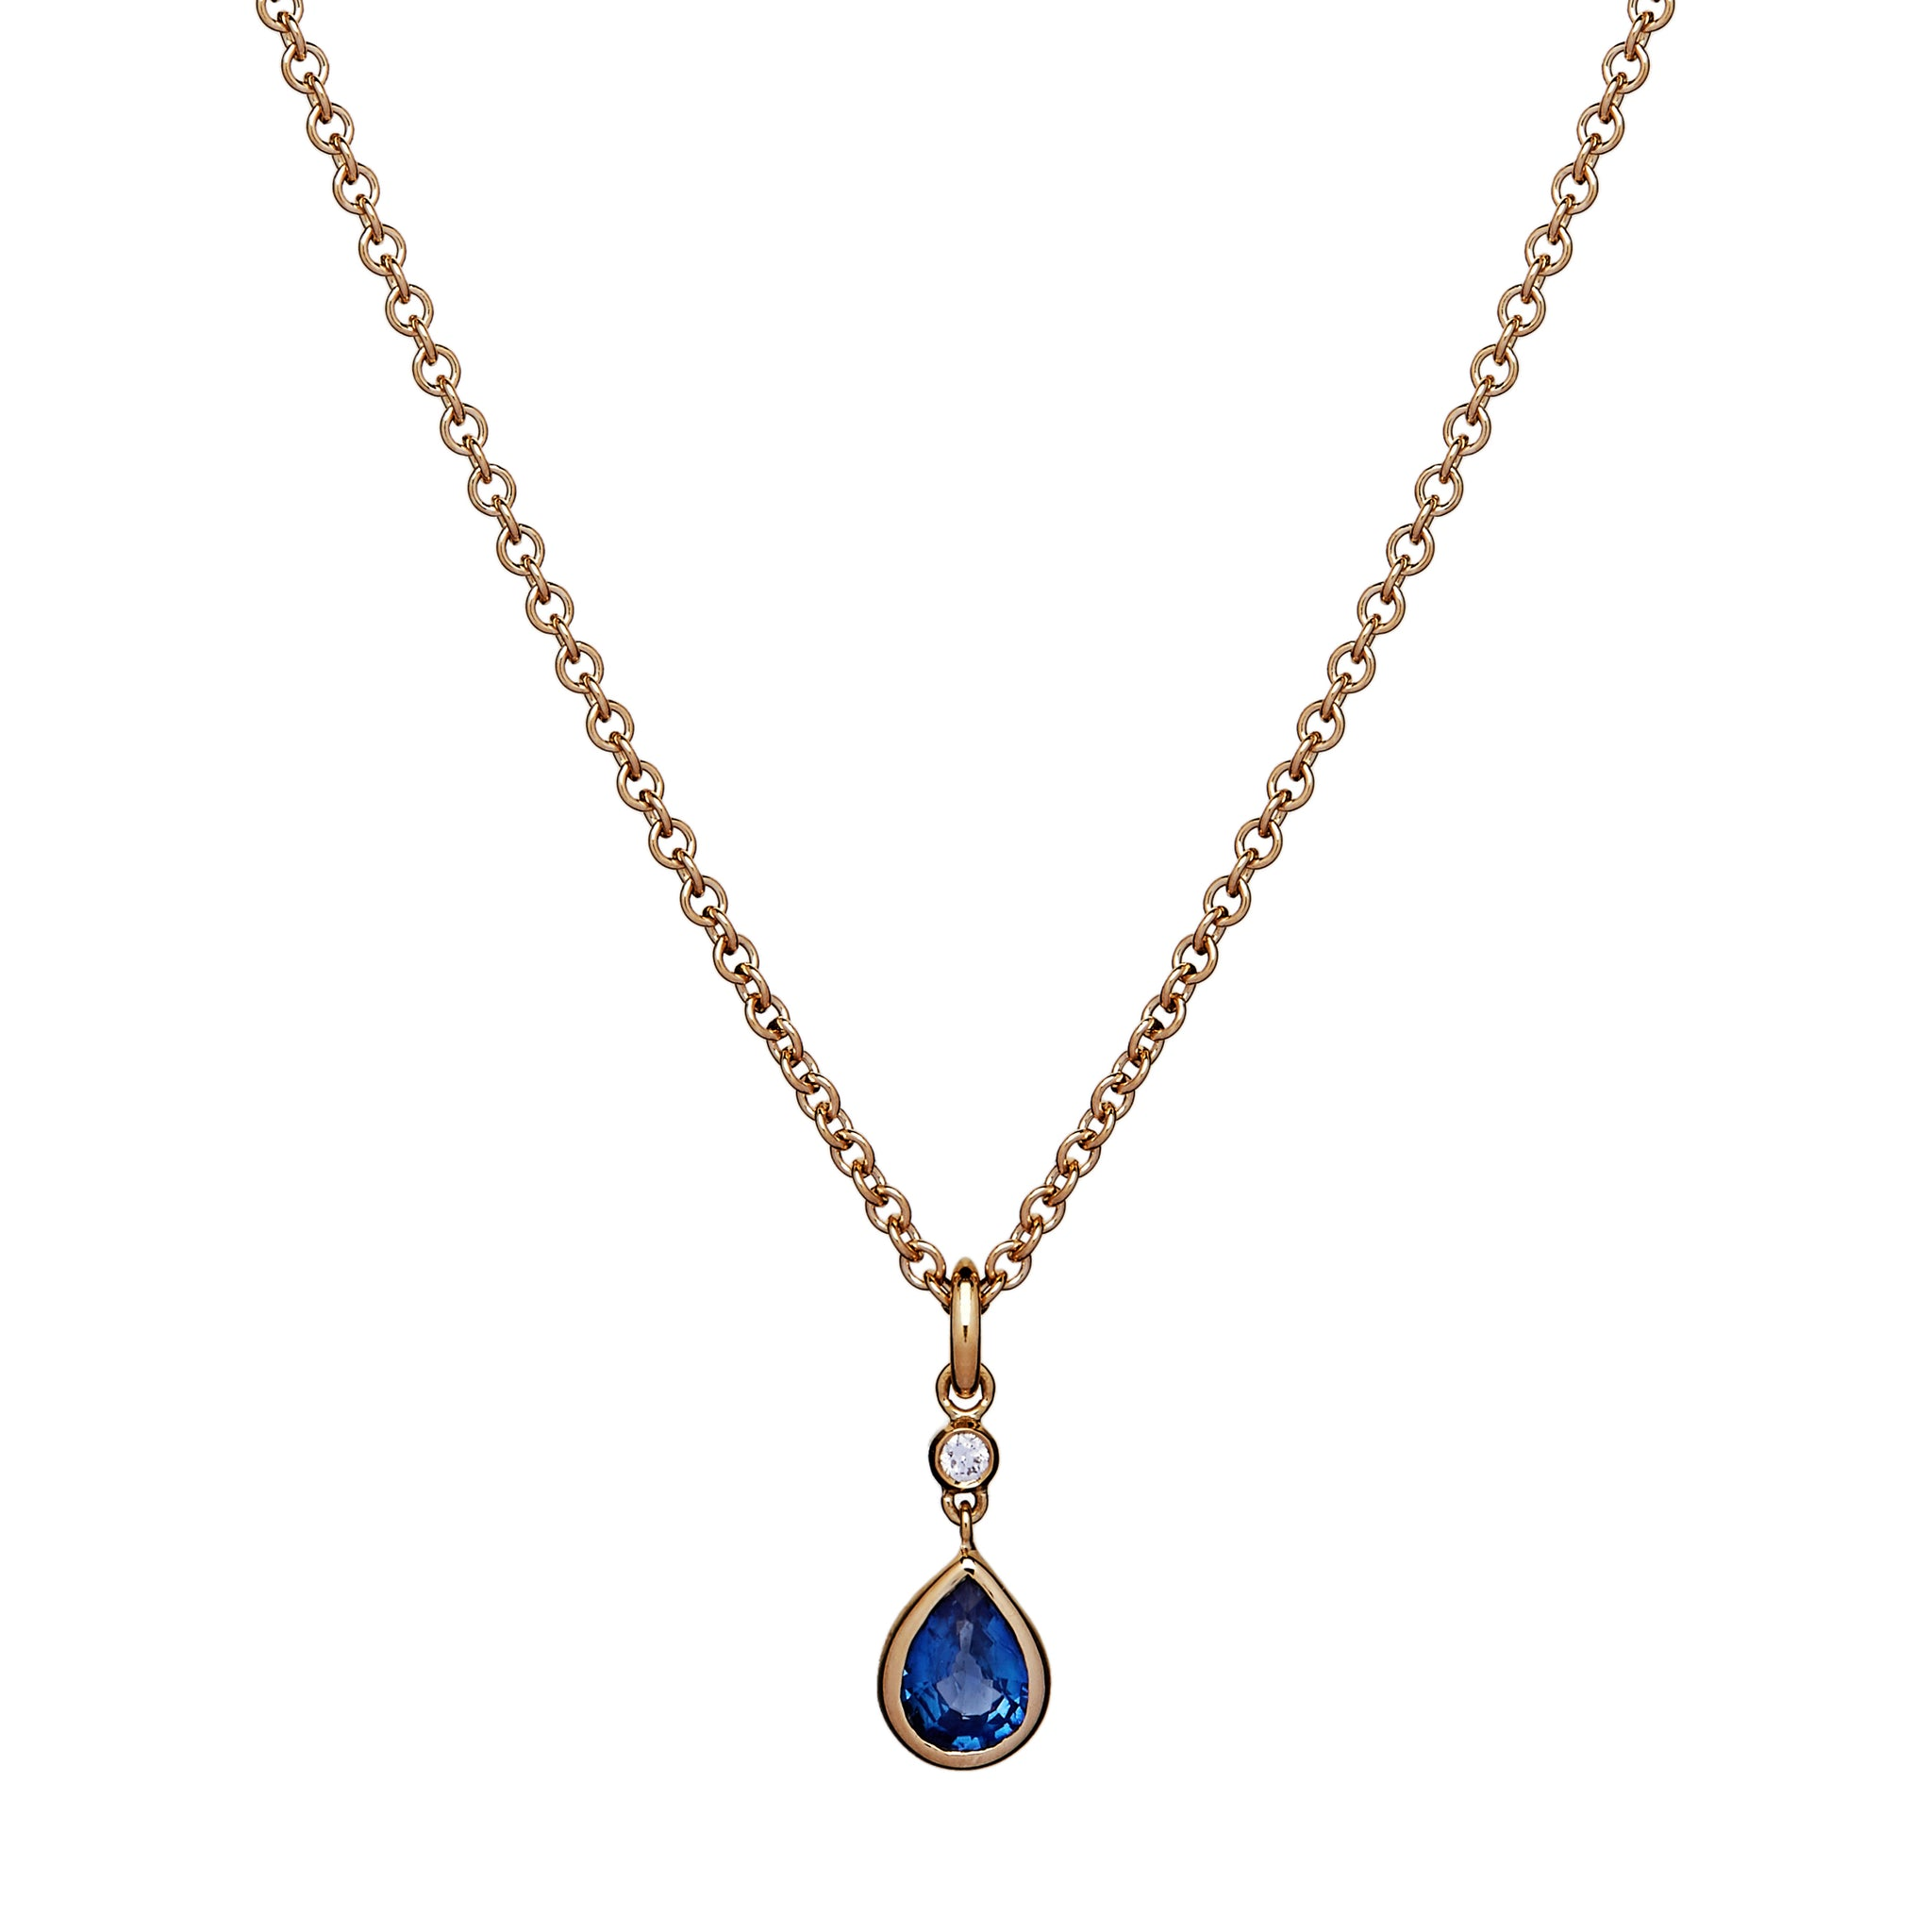 Peardrop Necklace - Sapphire and Diamond